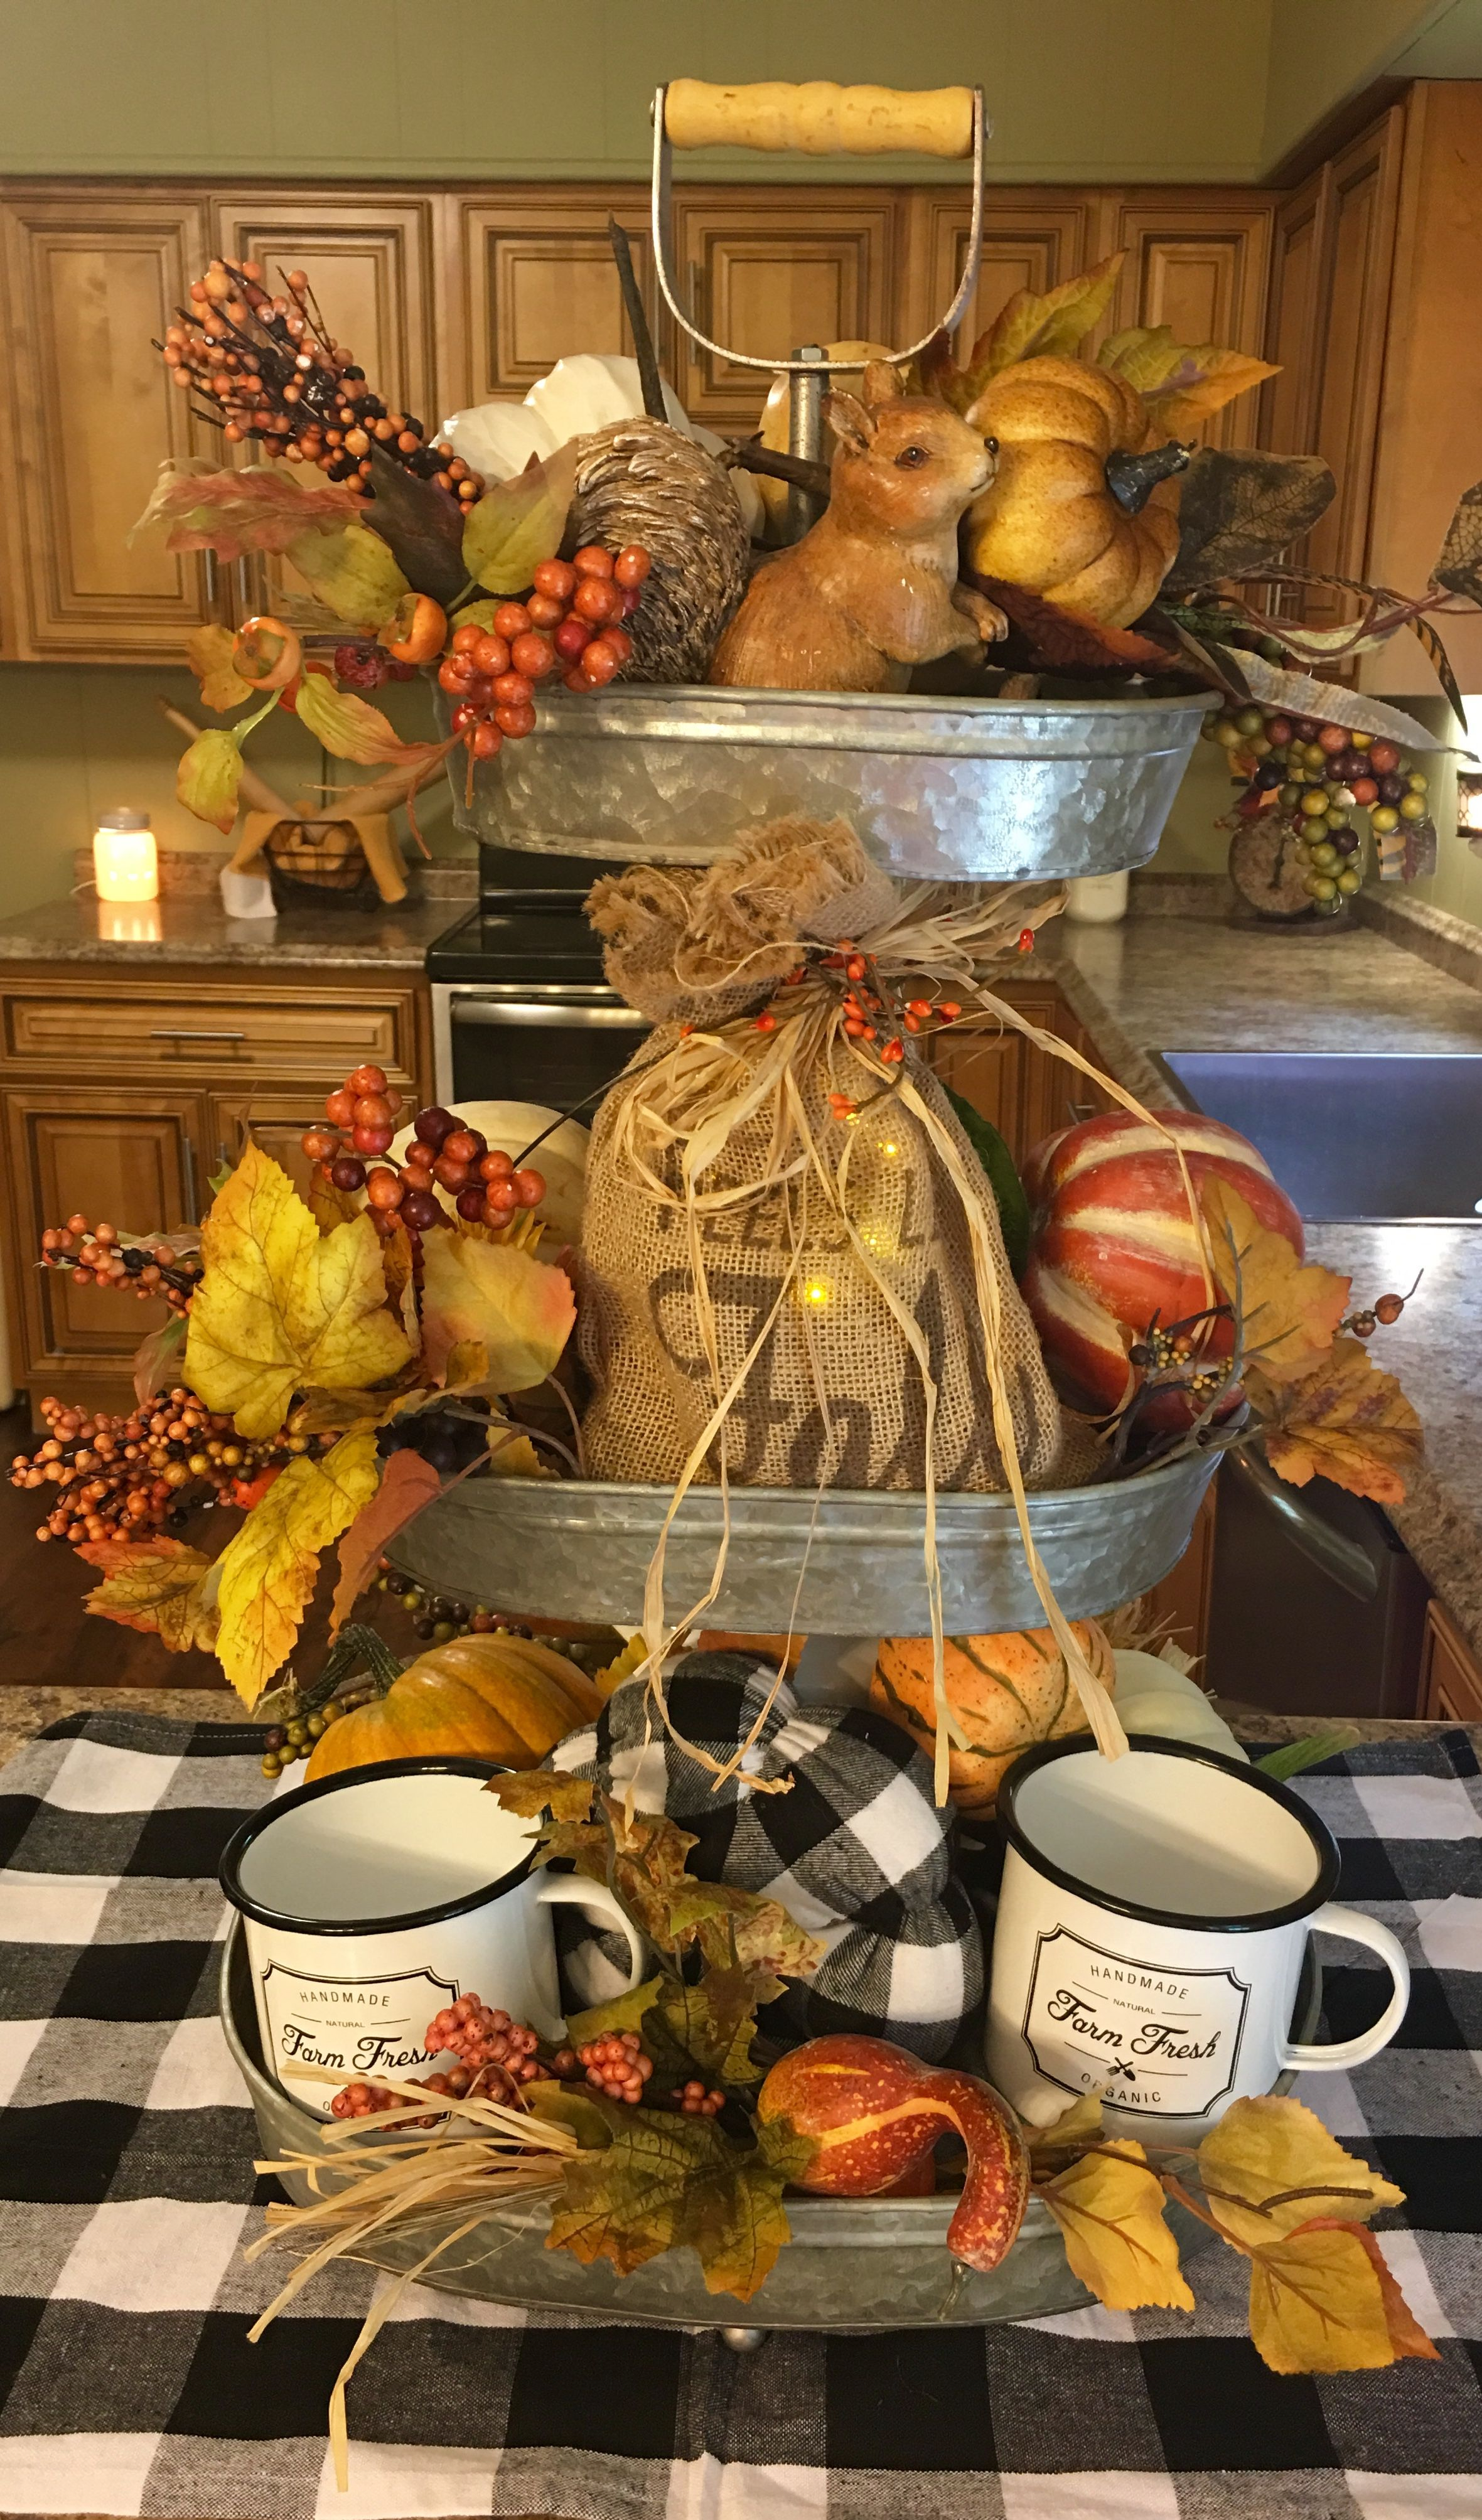 Pin by Susan Bowles on Farmhouse decorating Tiered tray